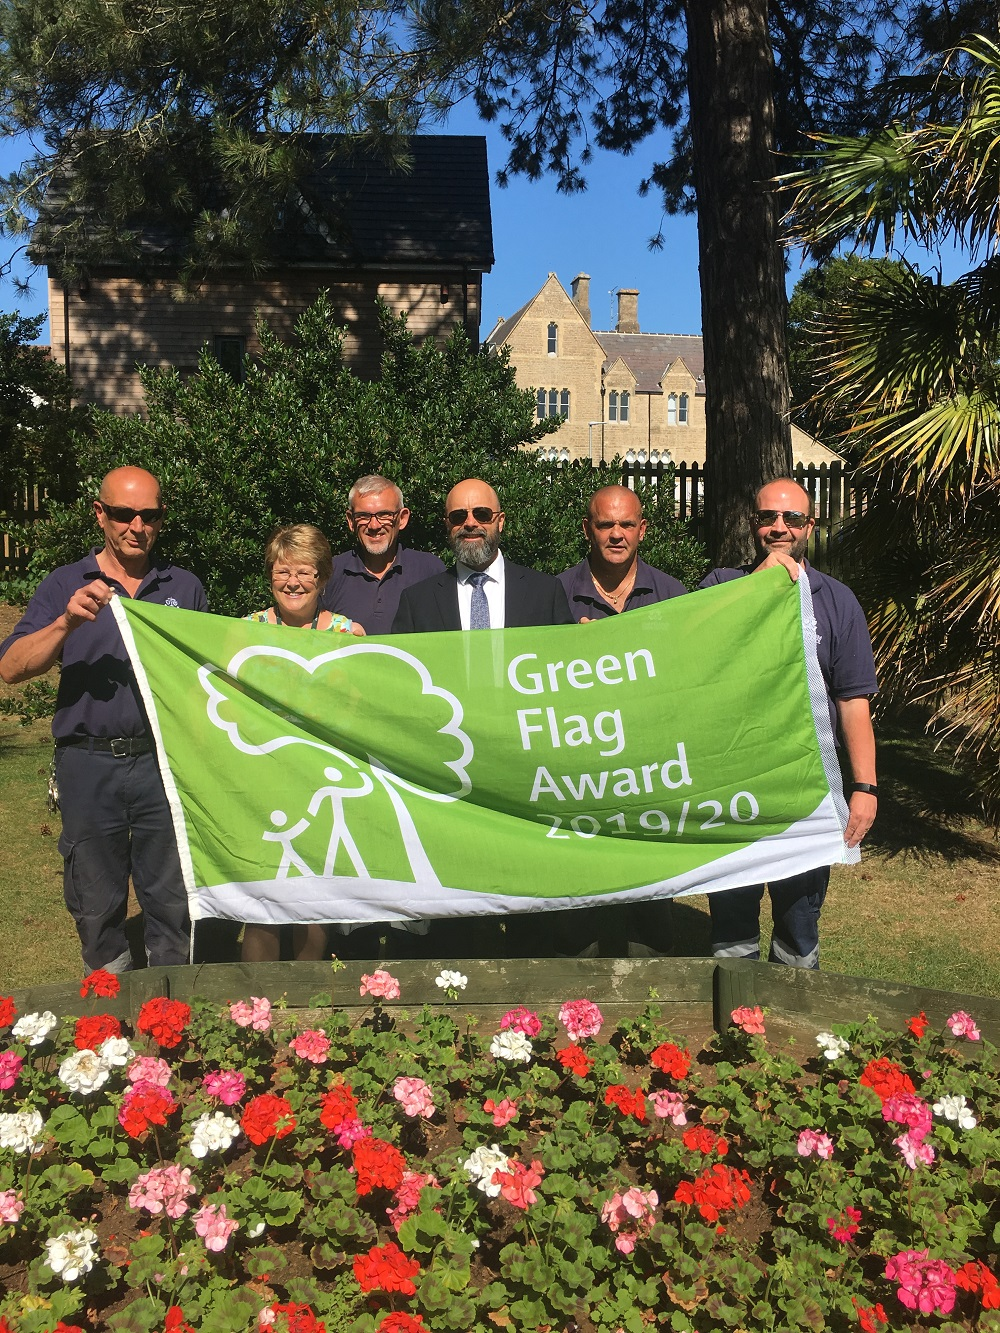 Members of Chippenham Town Council standing behind a large green flag with white writing saying 'Green Flag Award 2019-2020'. Sunny blue sky with trees behind the people and colourful flowers in front.